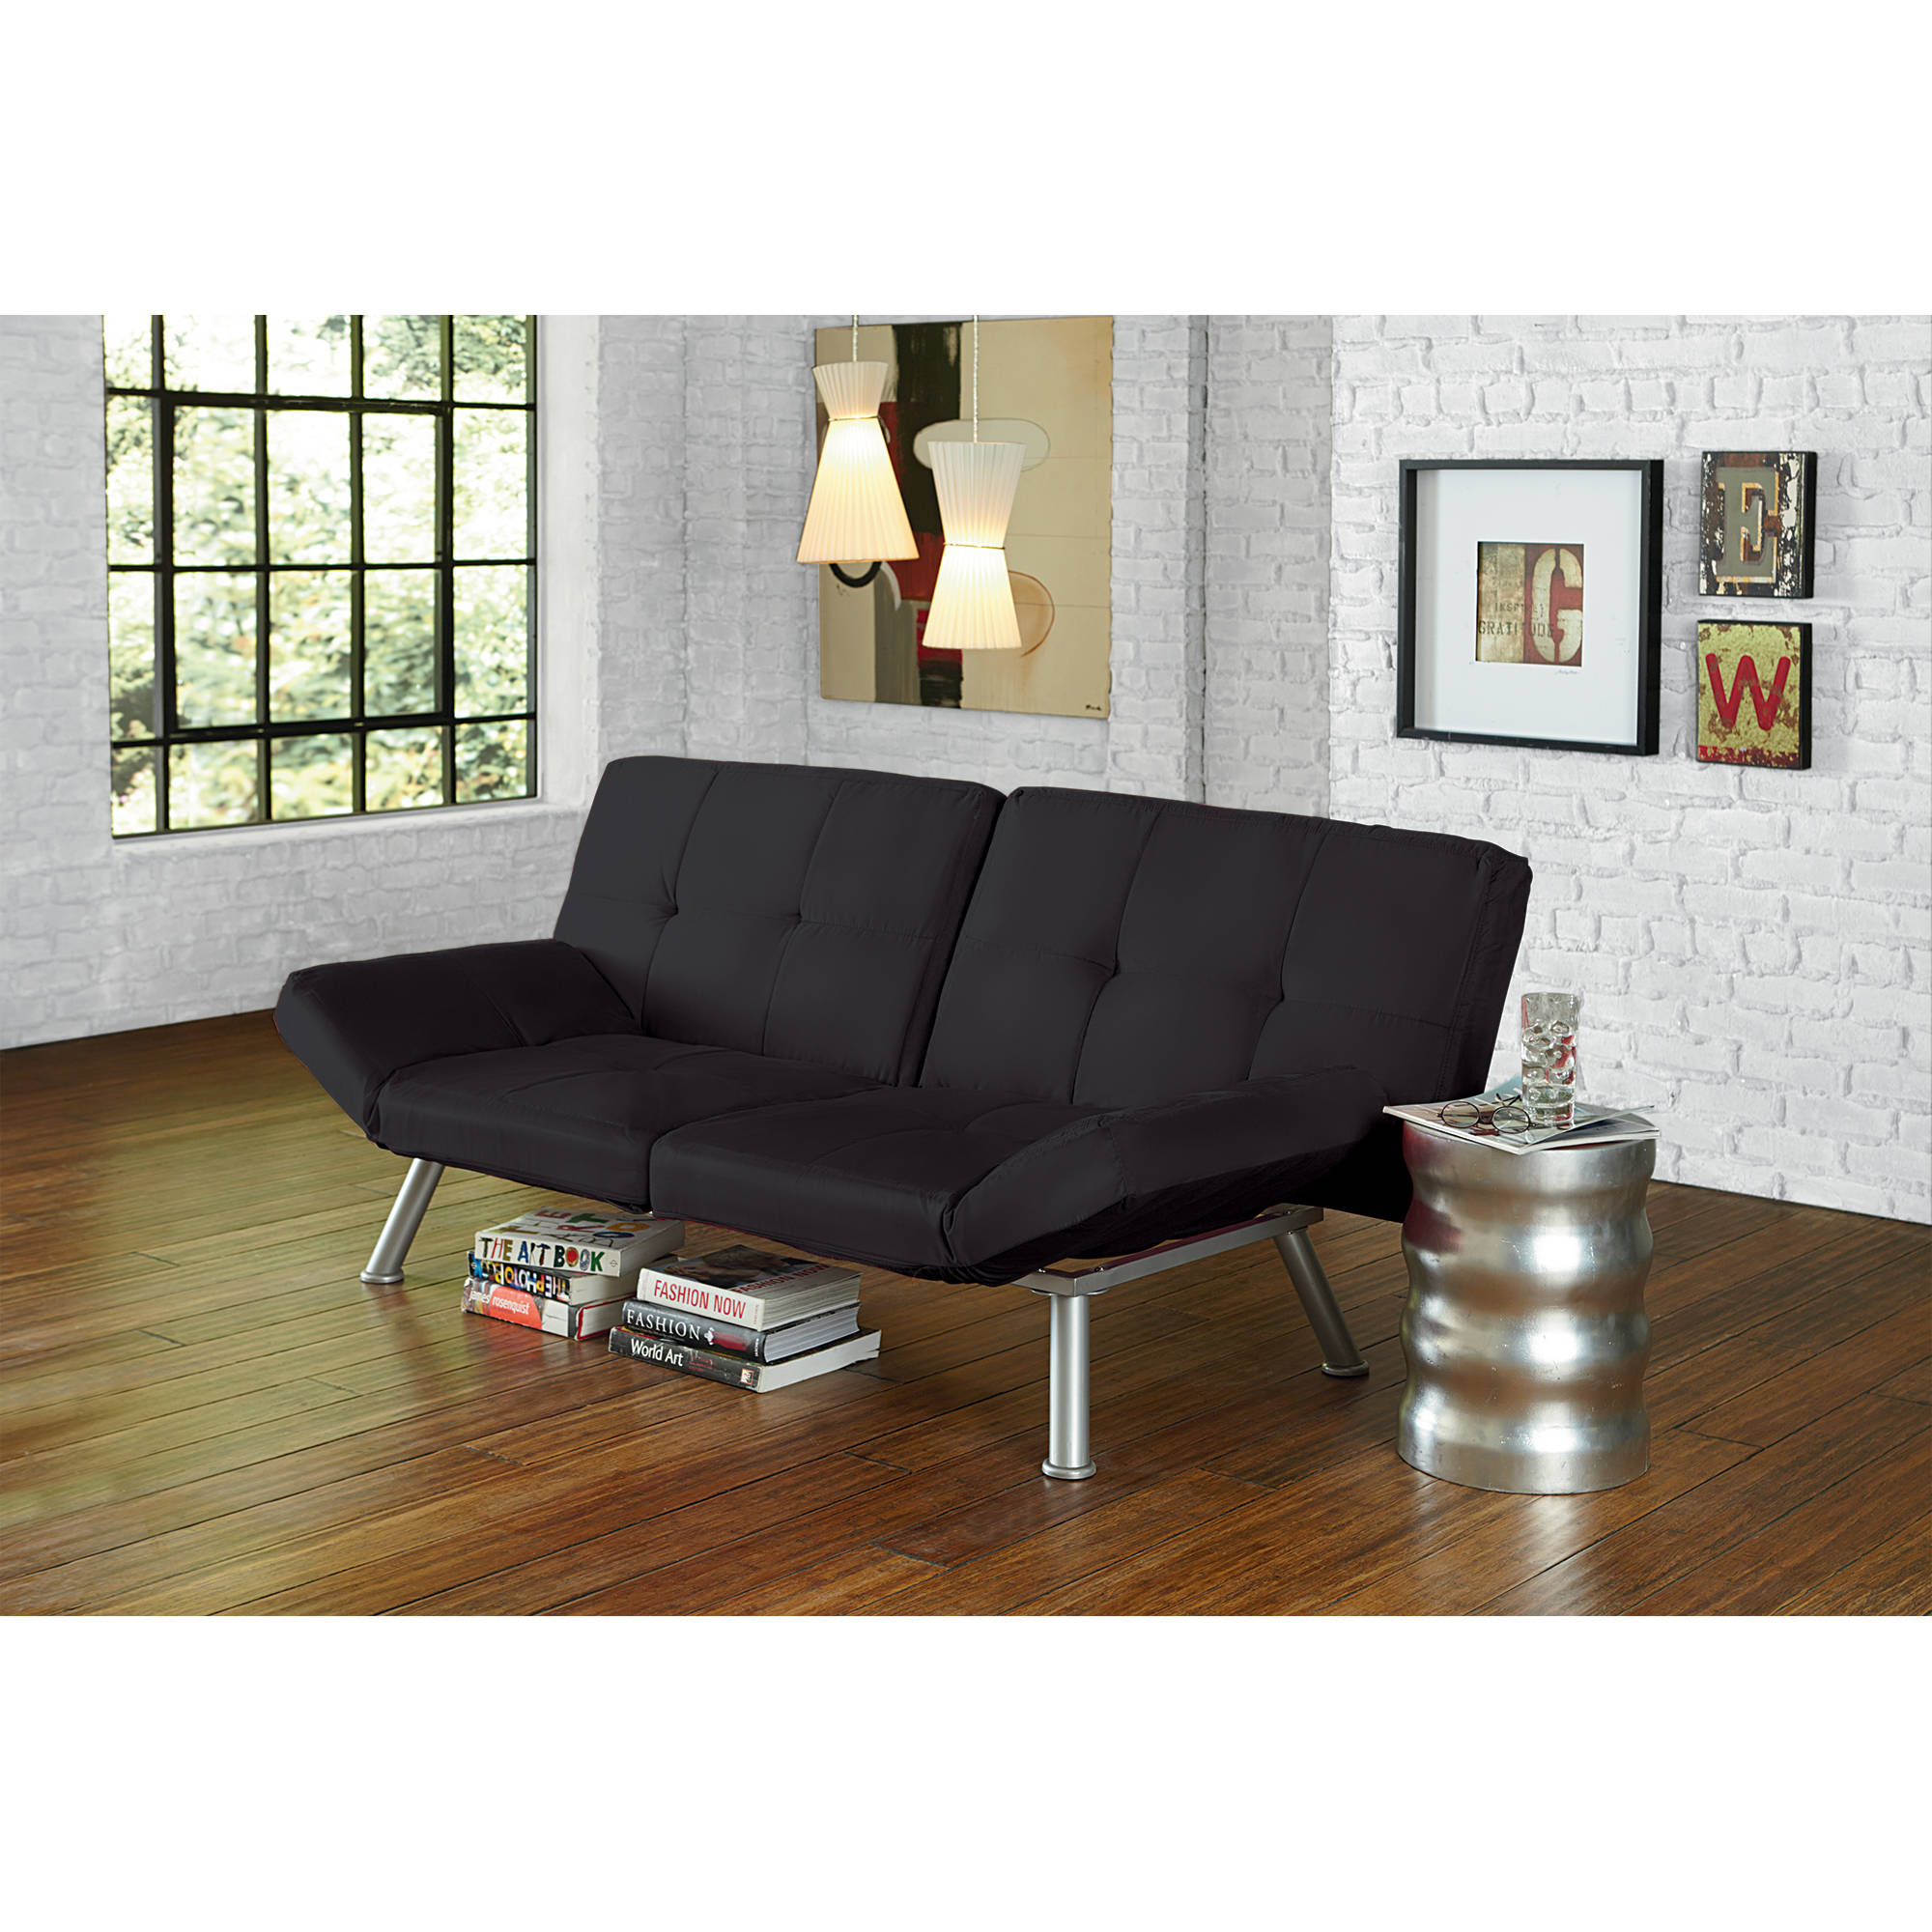 Mainstays Contempo Futon, Multiple Colors